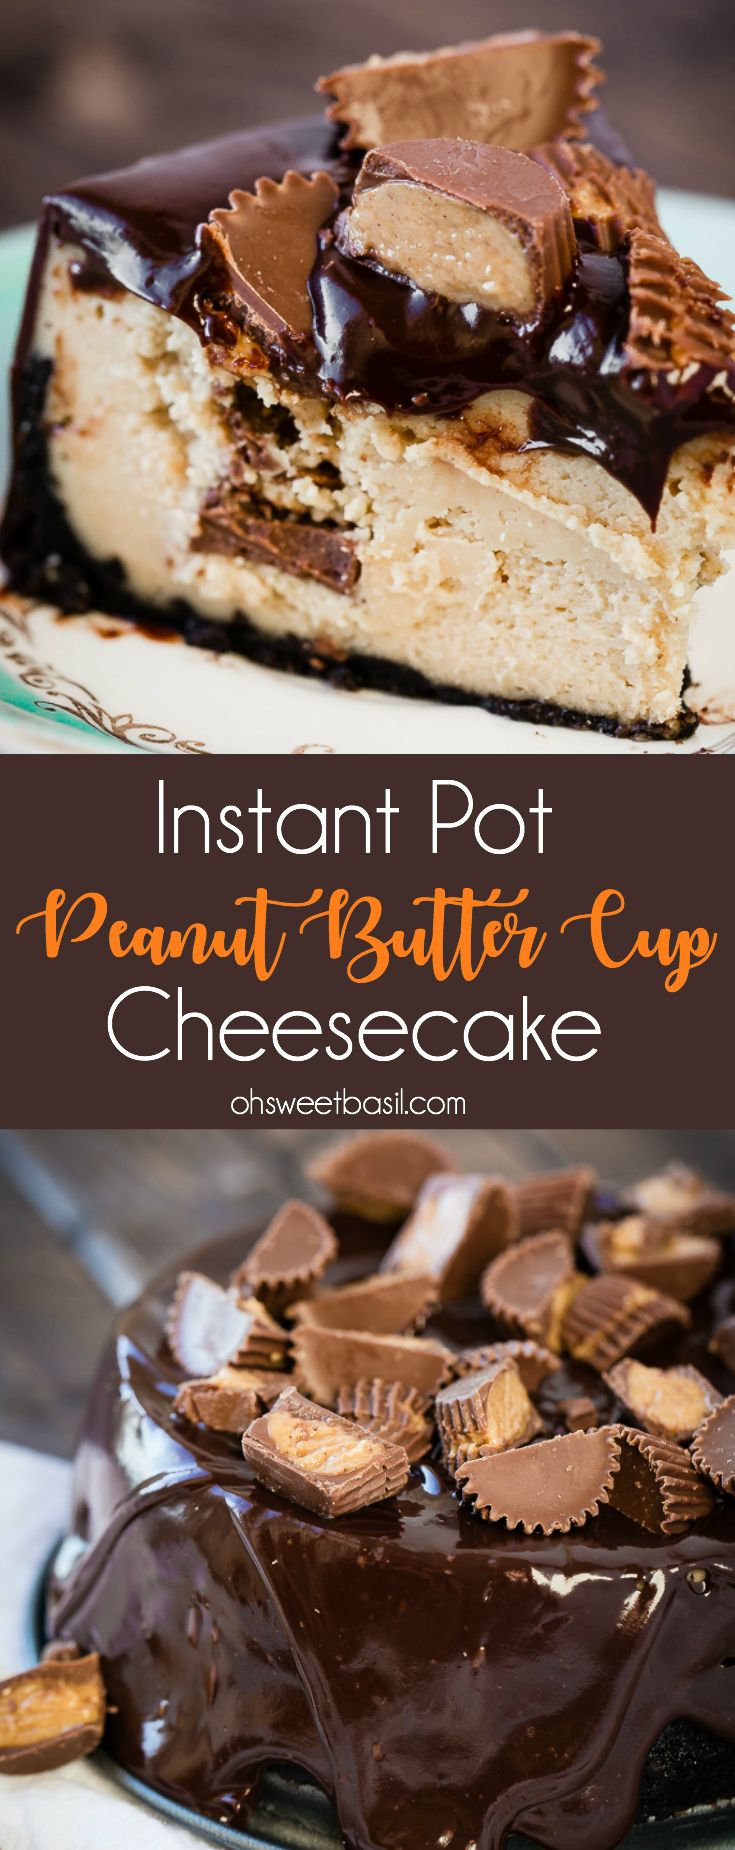 Dessert recipes for the instant pot are amazing! This instant pot peanut butter …